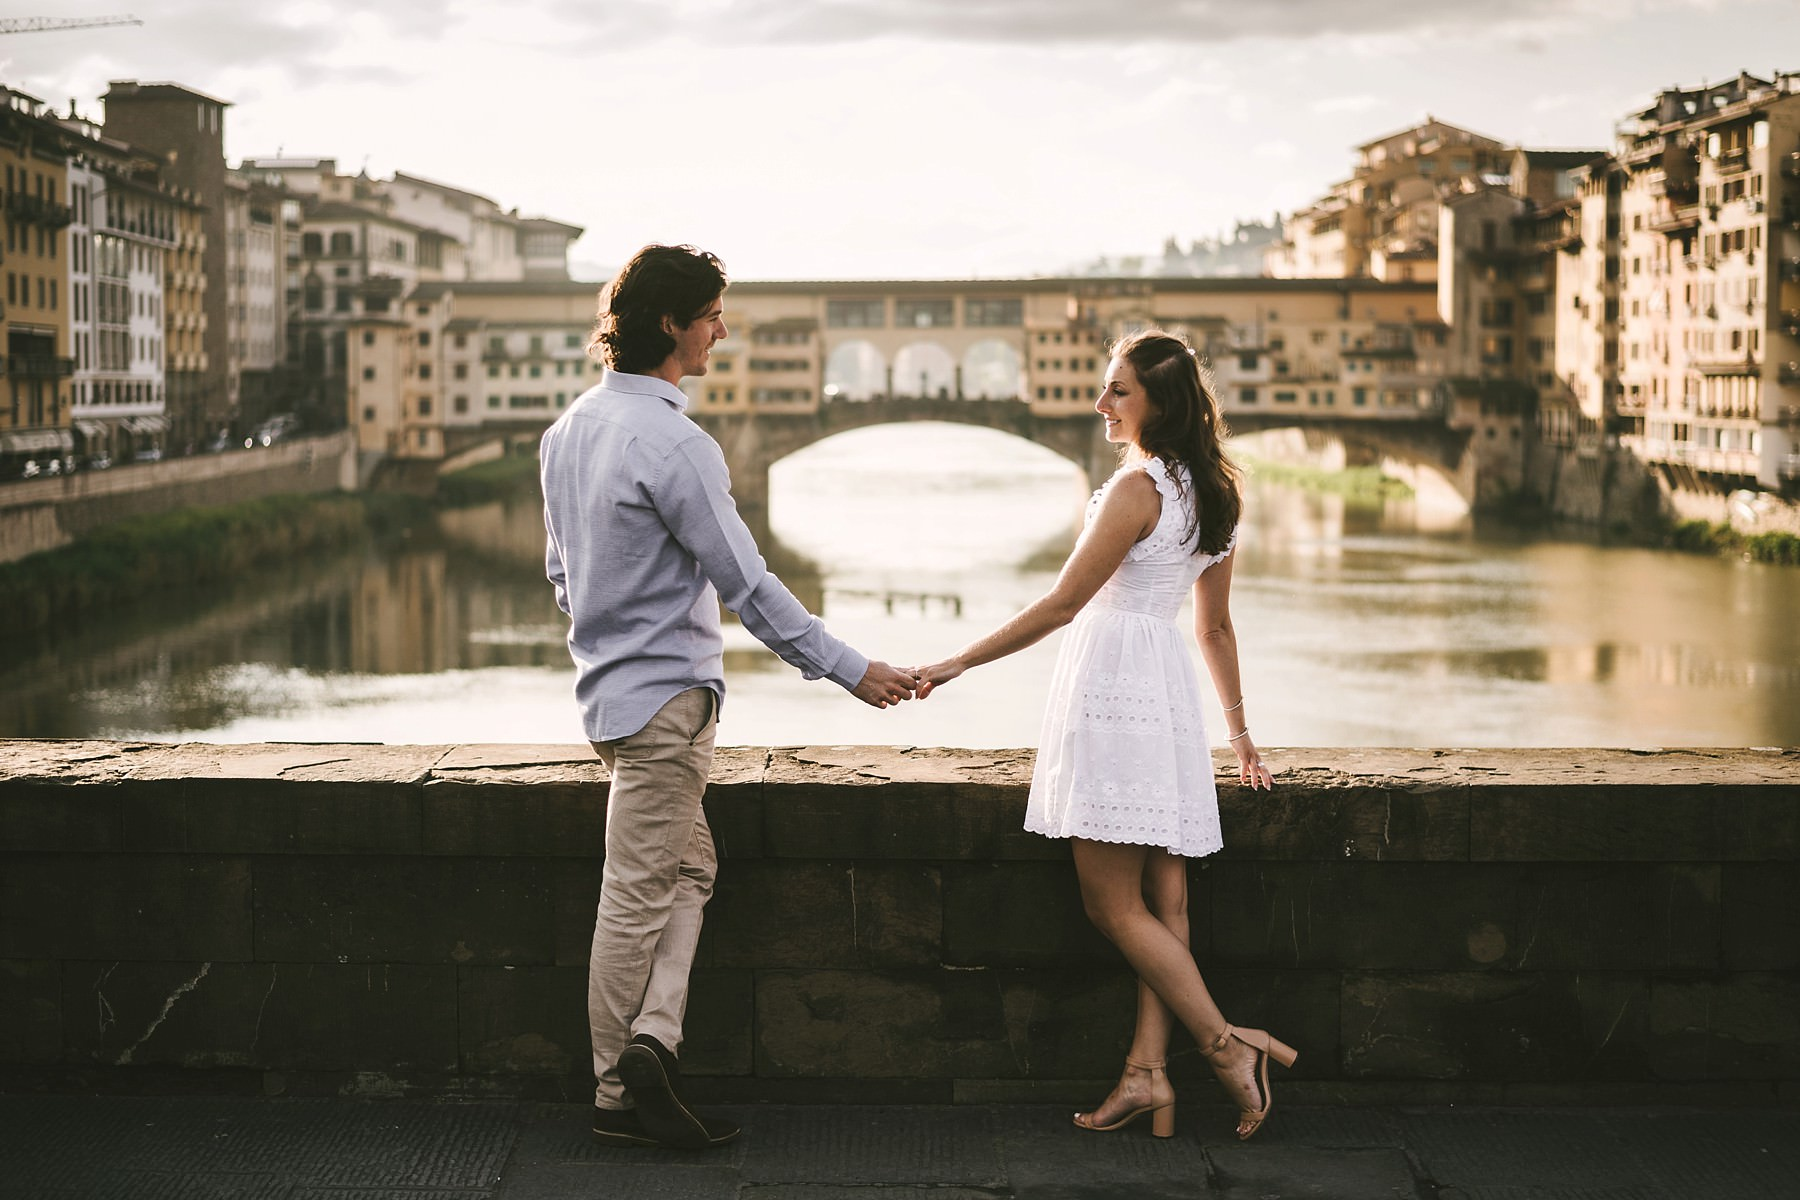 Beautiful couple engagement pre wedding photo shoot at Ponte Vecchio, Florence